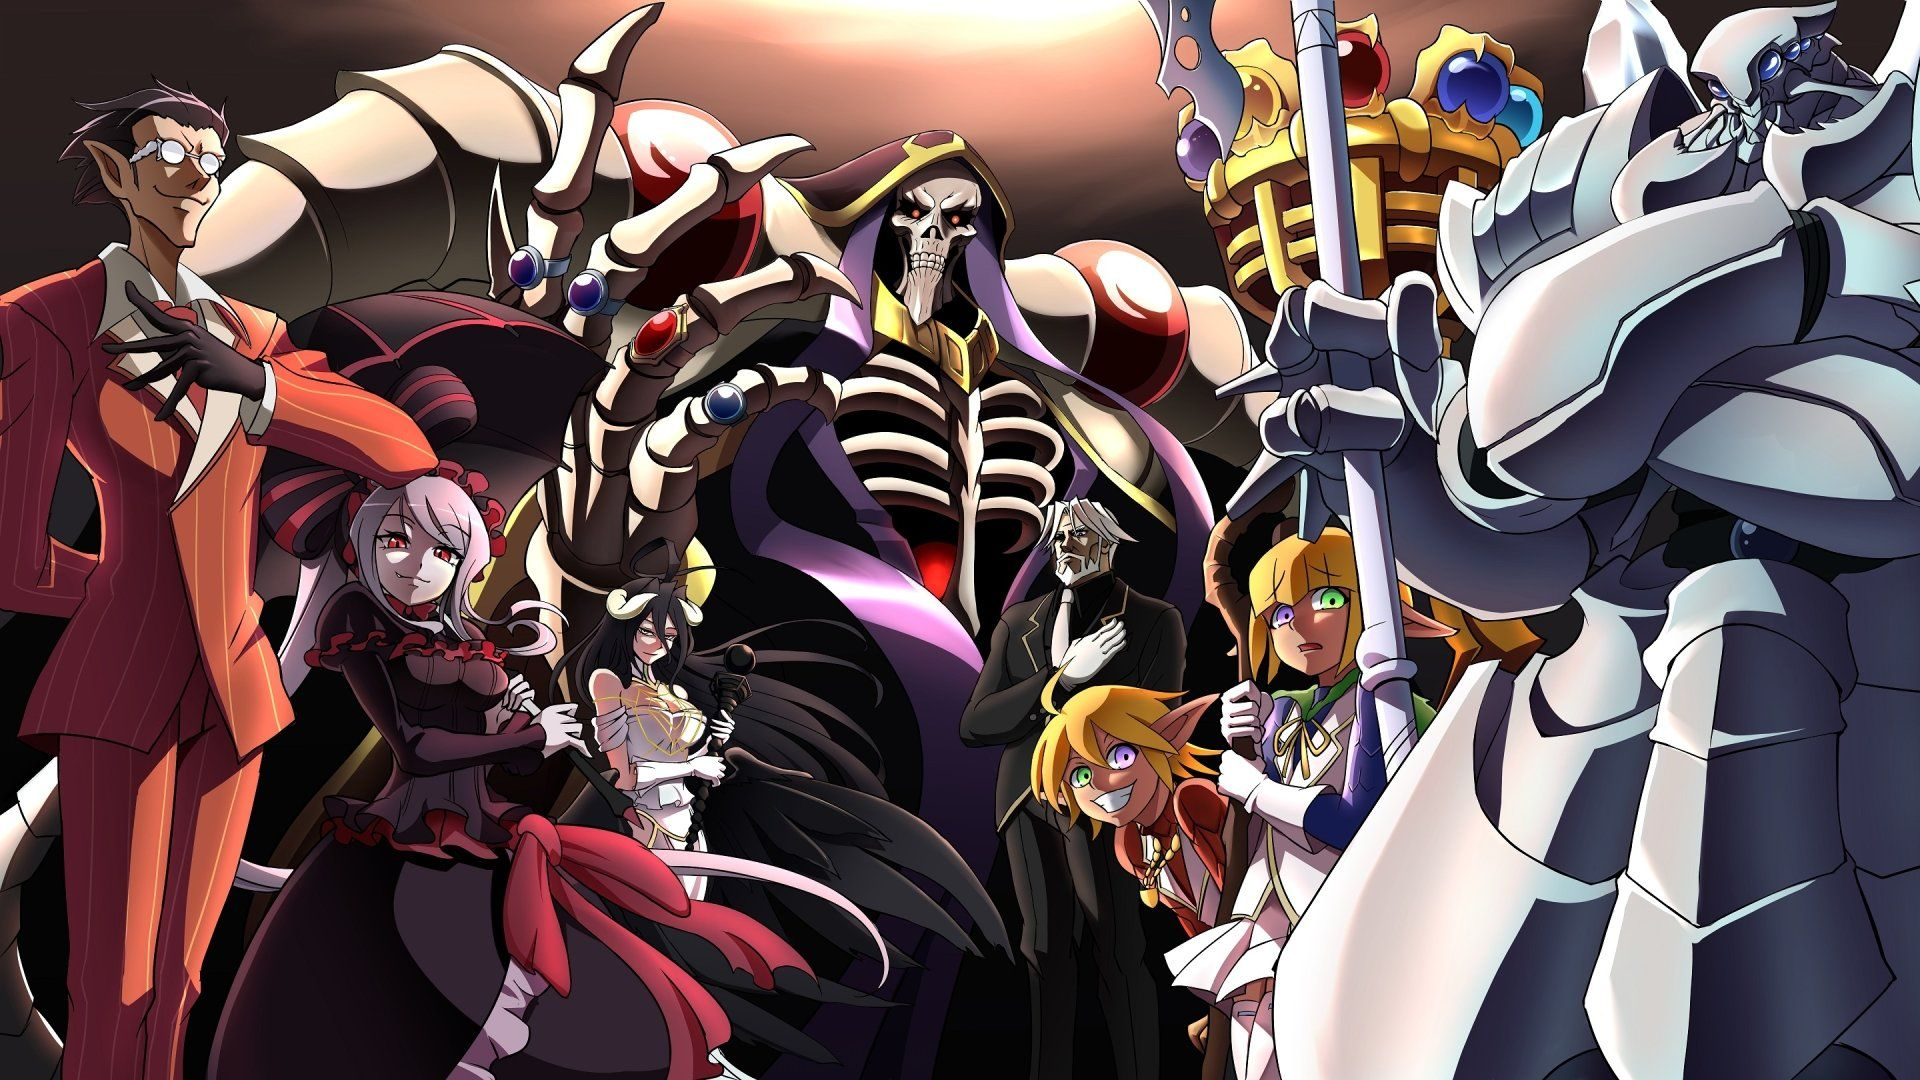 Anime Overlord Overlord Anime Demiurge Overlord Shalltear Bloodfallen Albedo Overlord Ainz Ooal Gown Albedo Videojuegos Fondos De Pantalla Pc